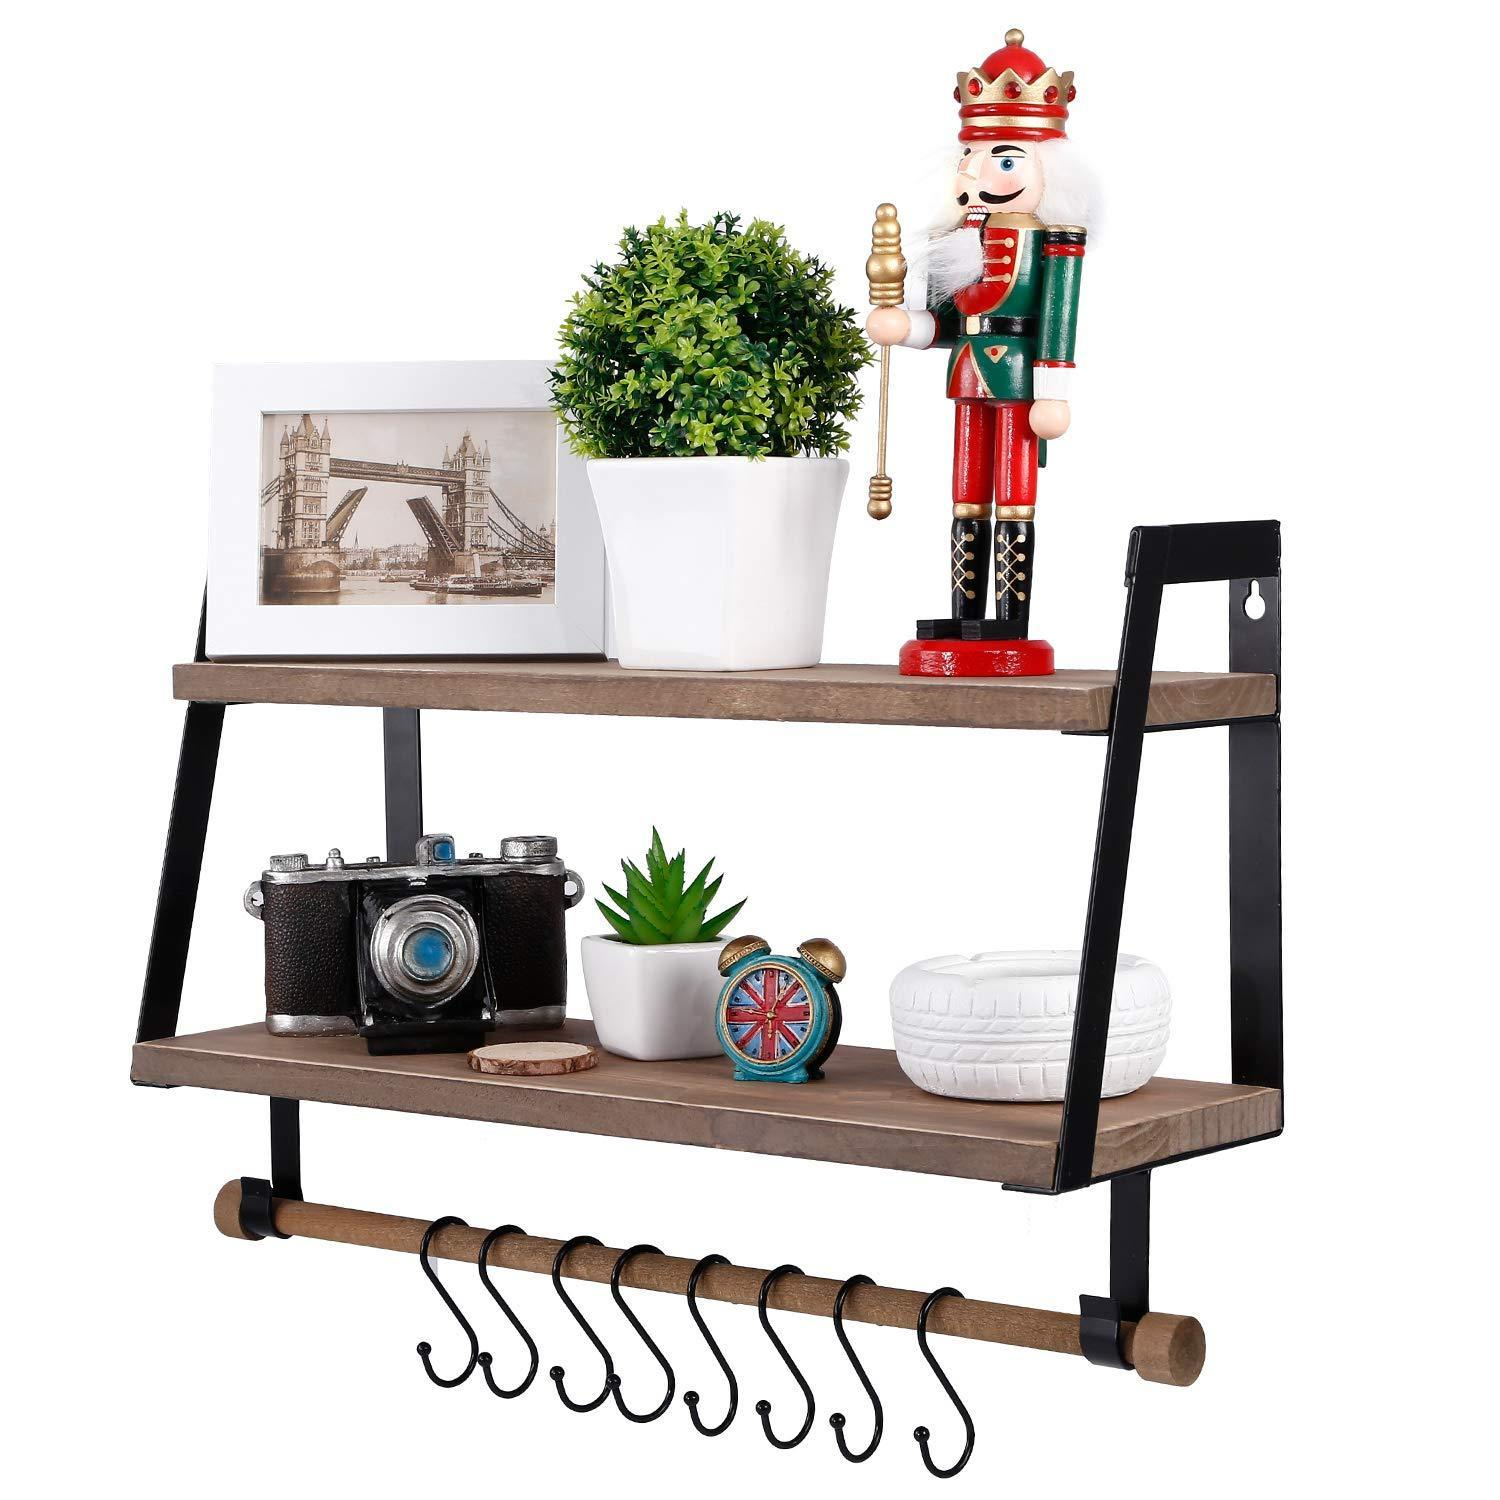 New kakivan 2 tier floating shelves wall mount for kitchen spice rack with 8 hooks storage rustic farmhouse wood wall shelf for bathroom decor with towel bar